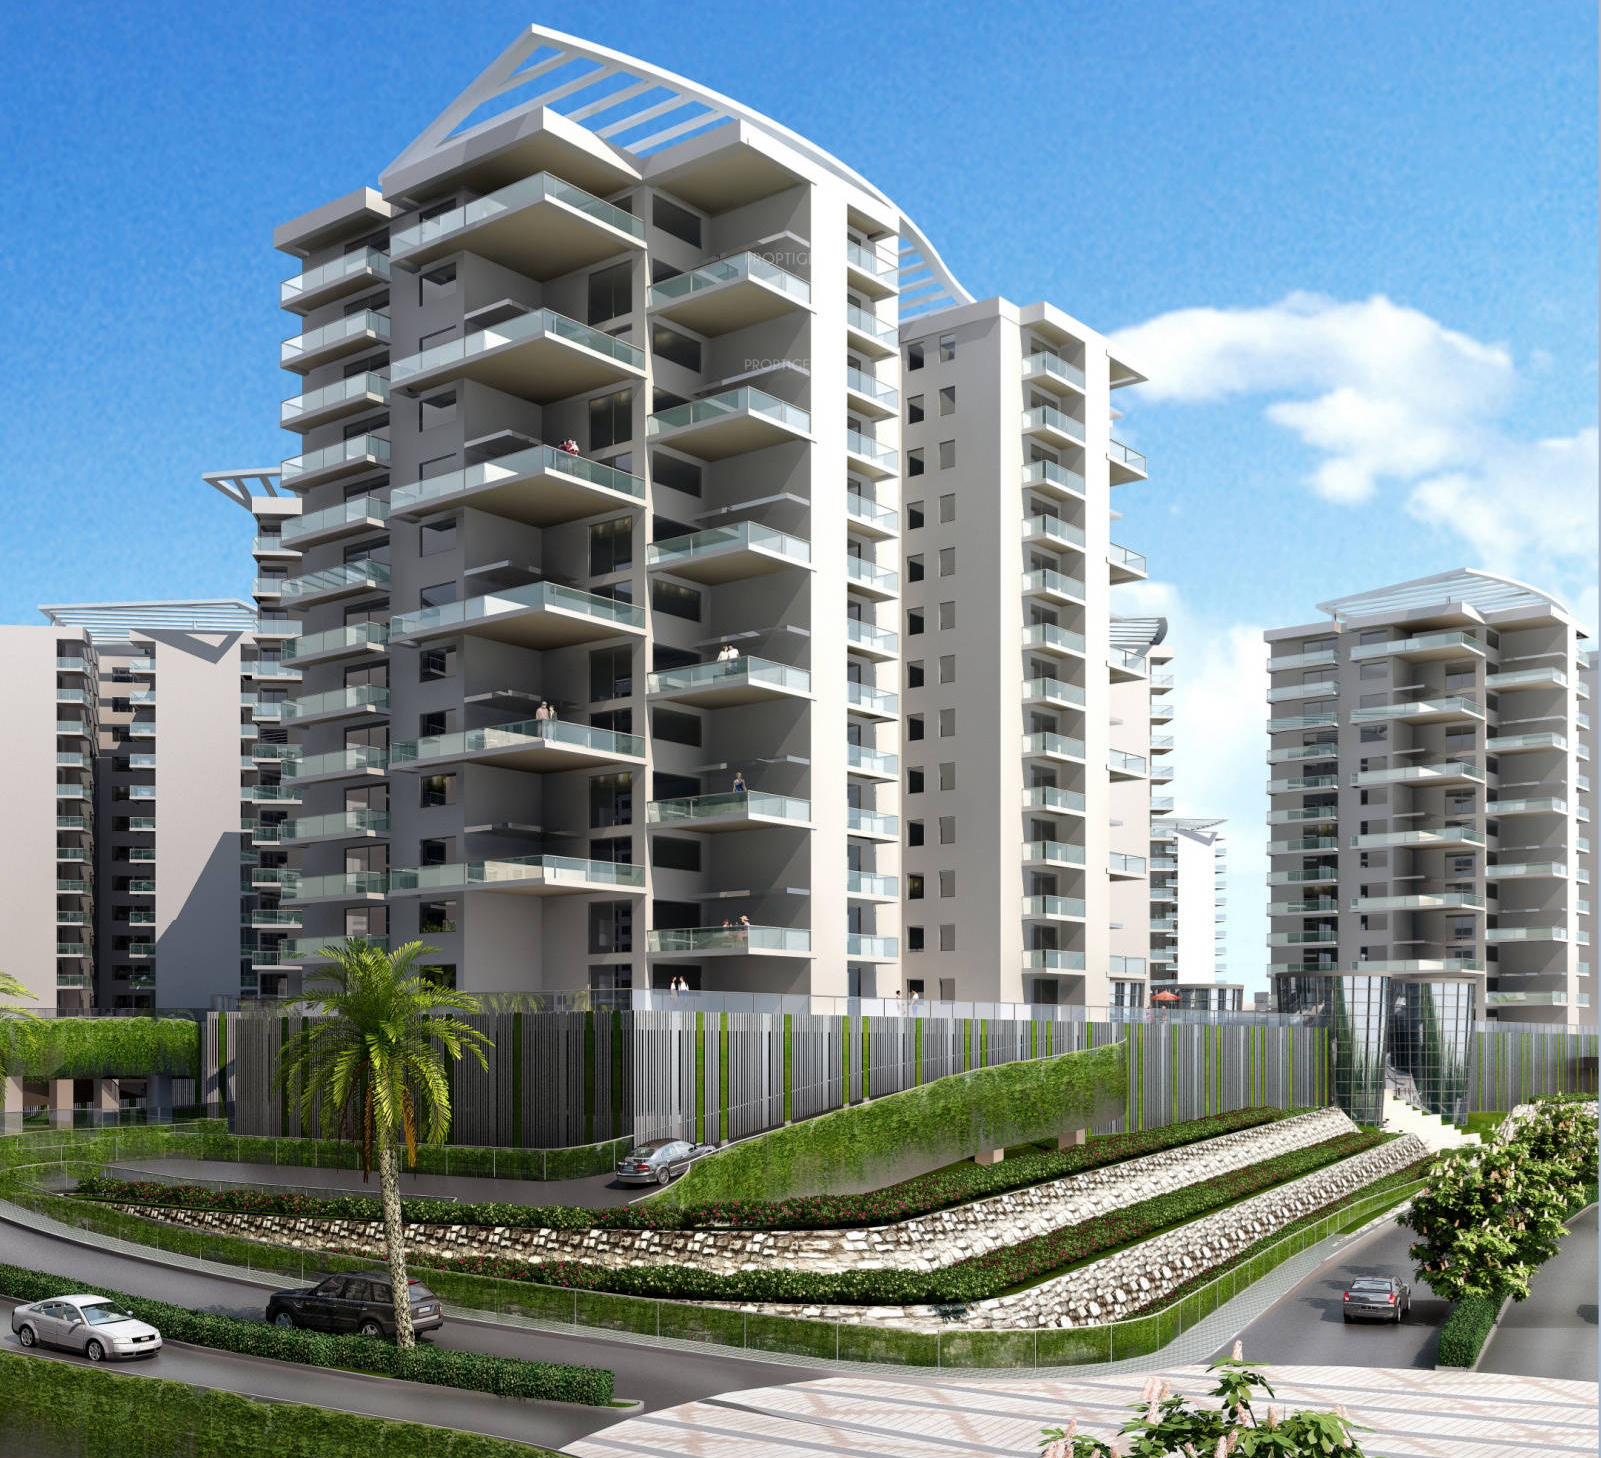 Suyojit Infrastructure - All New Projects by Suyojit Infrastructure